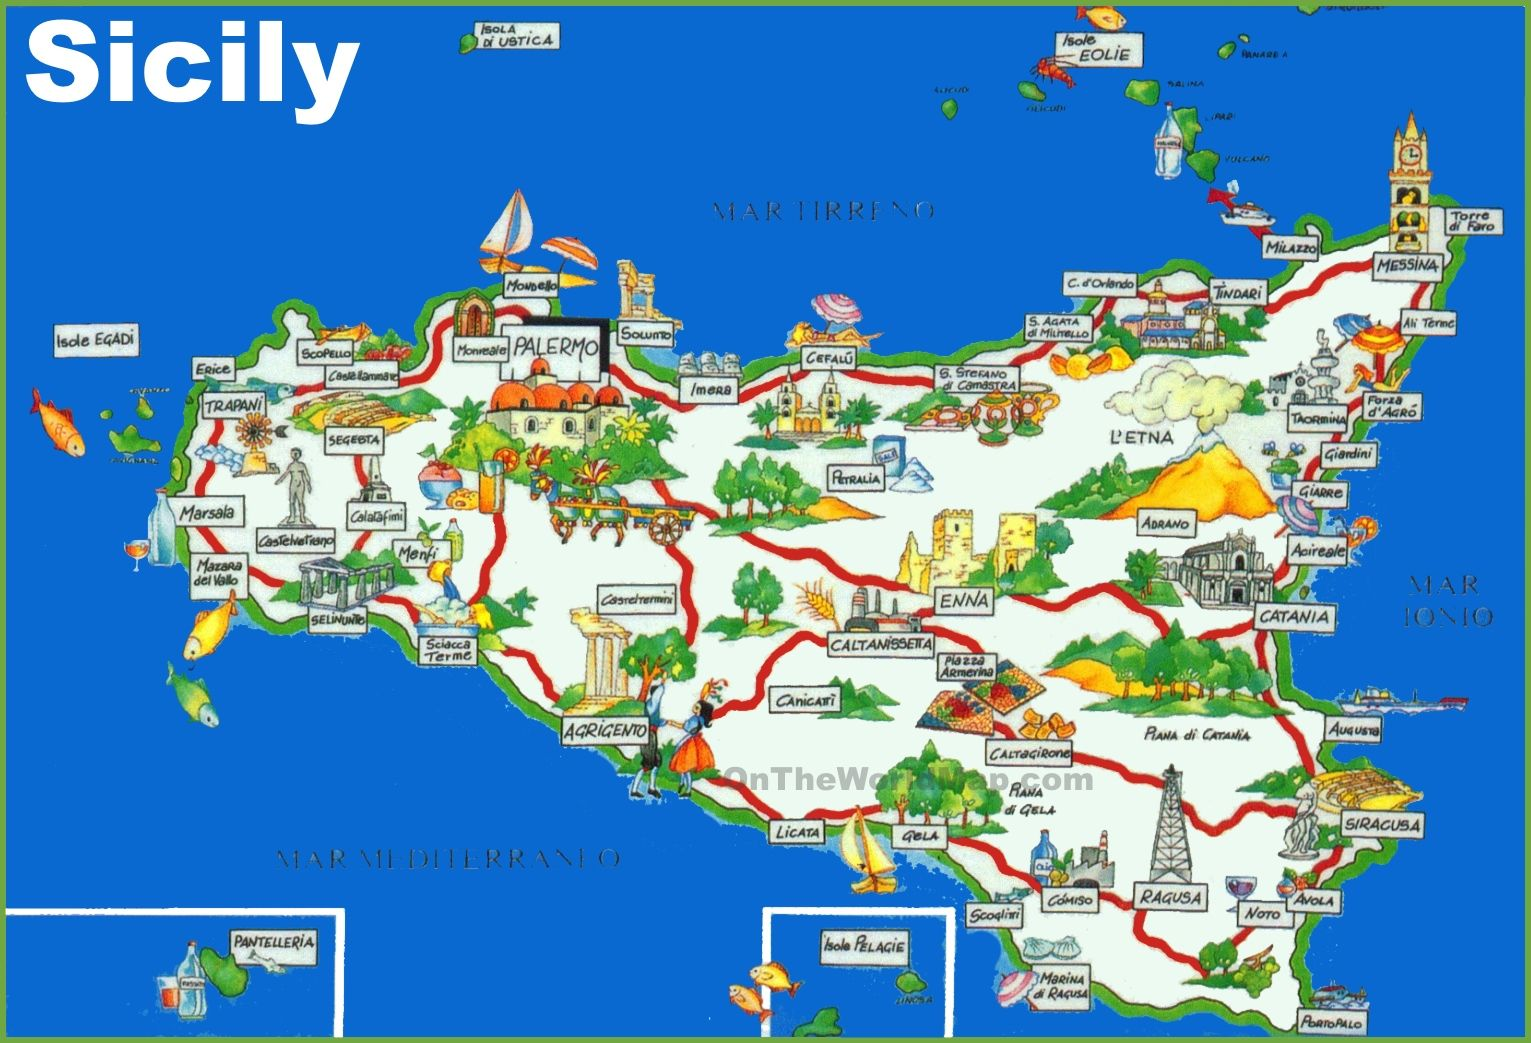 Sicily tourist map | Travel | Pinterest | Sicily, Italy and Tourist map